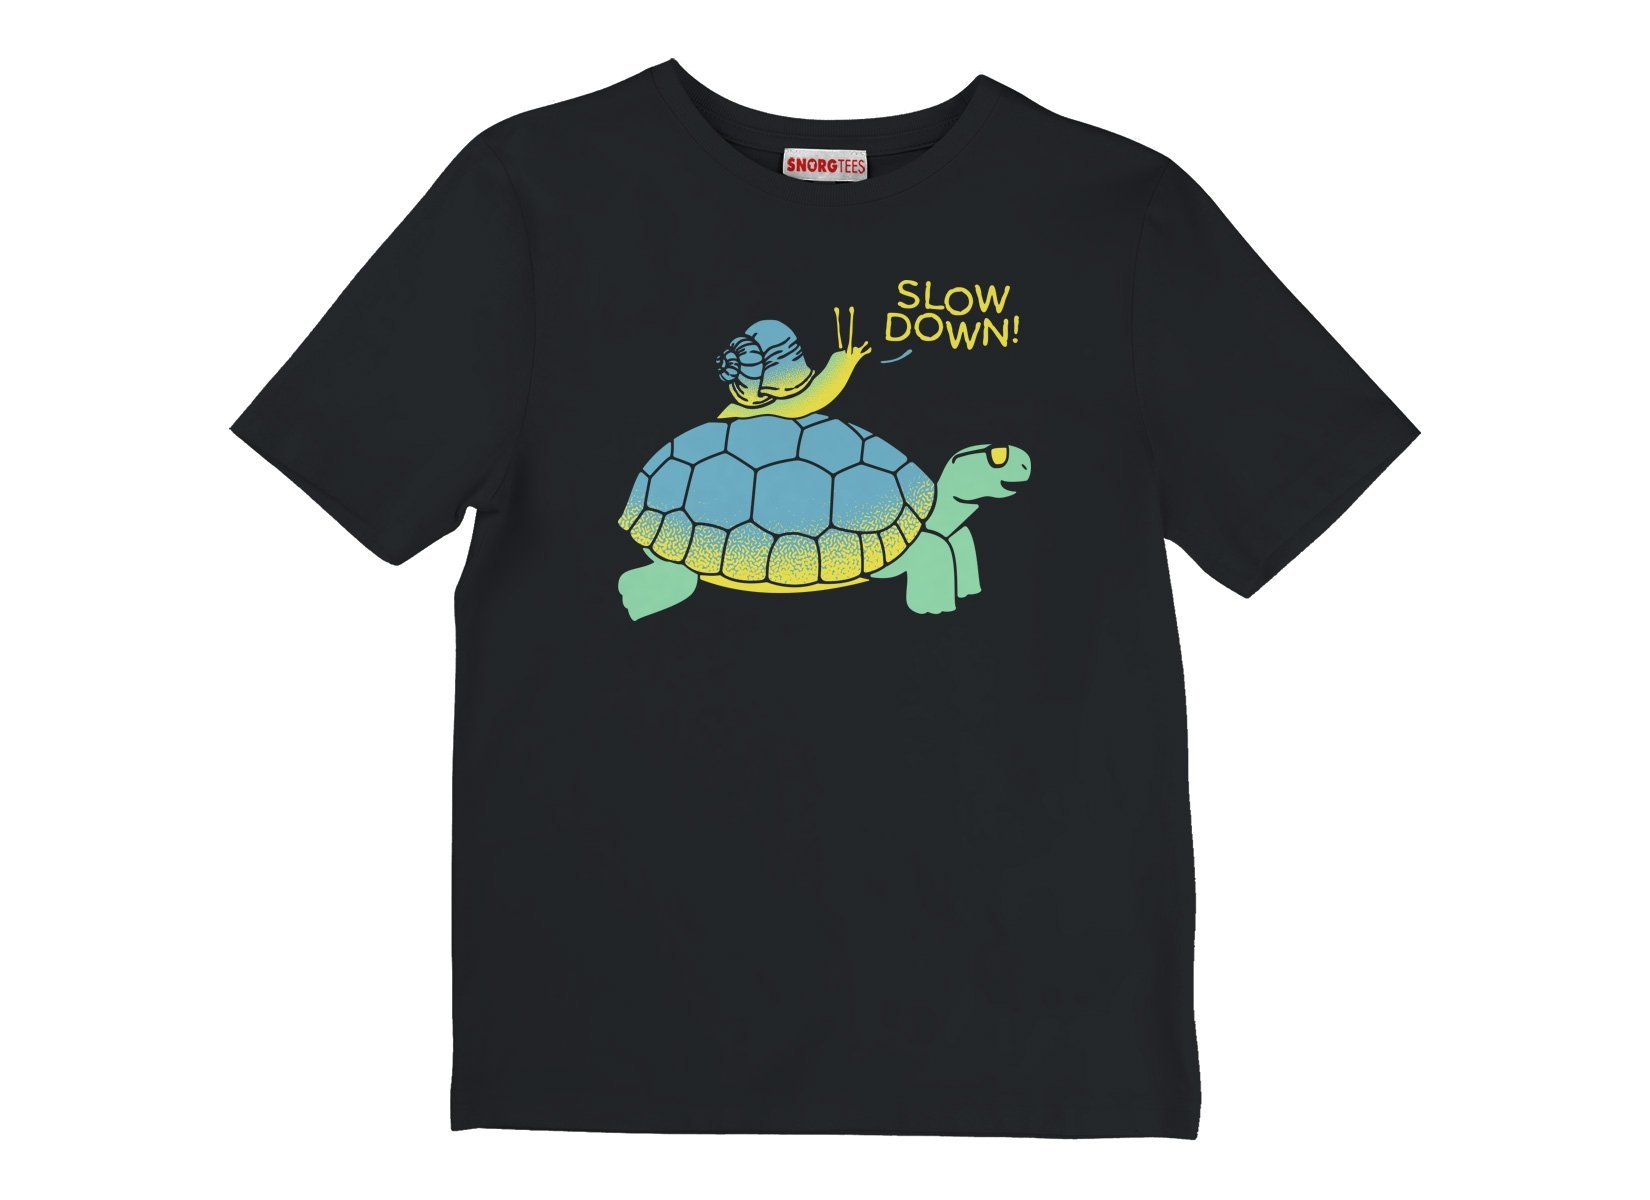 Slow Down! on Kids T-Shirt